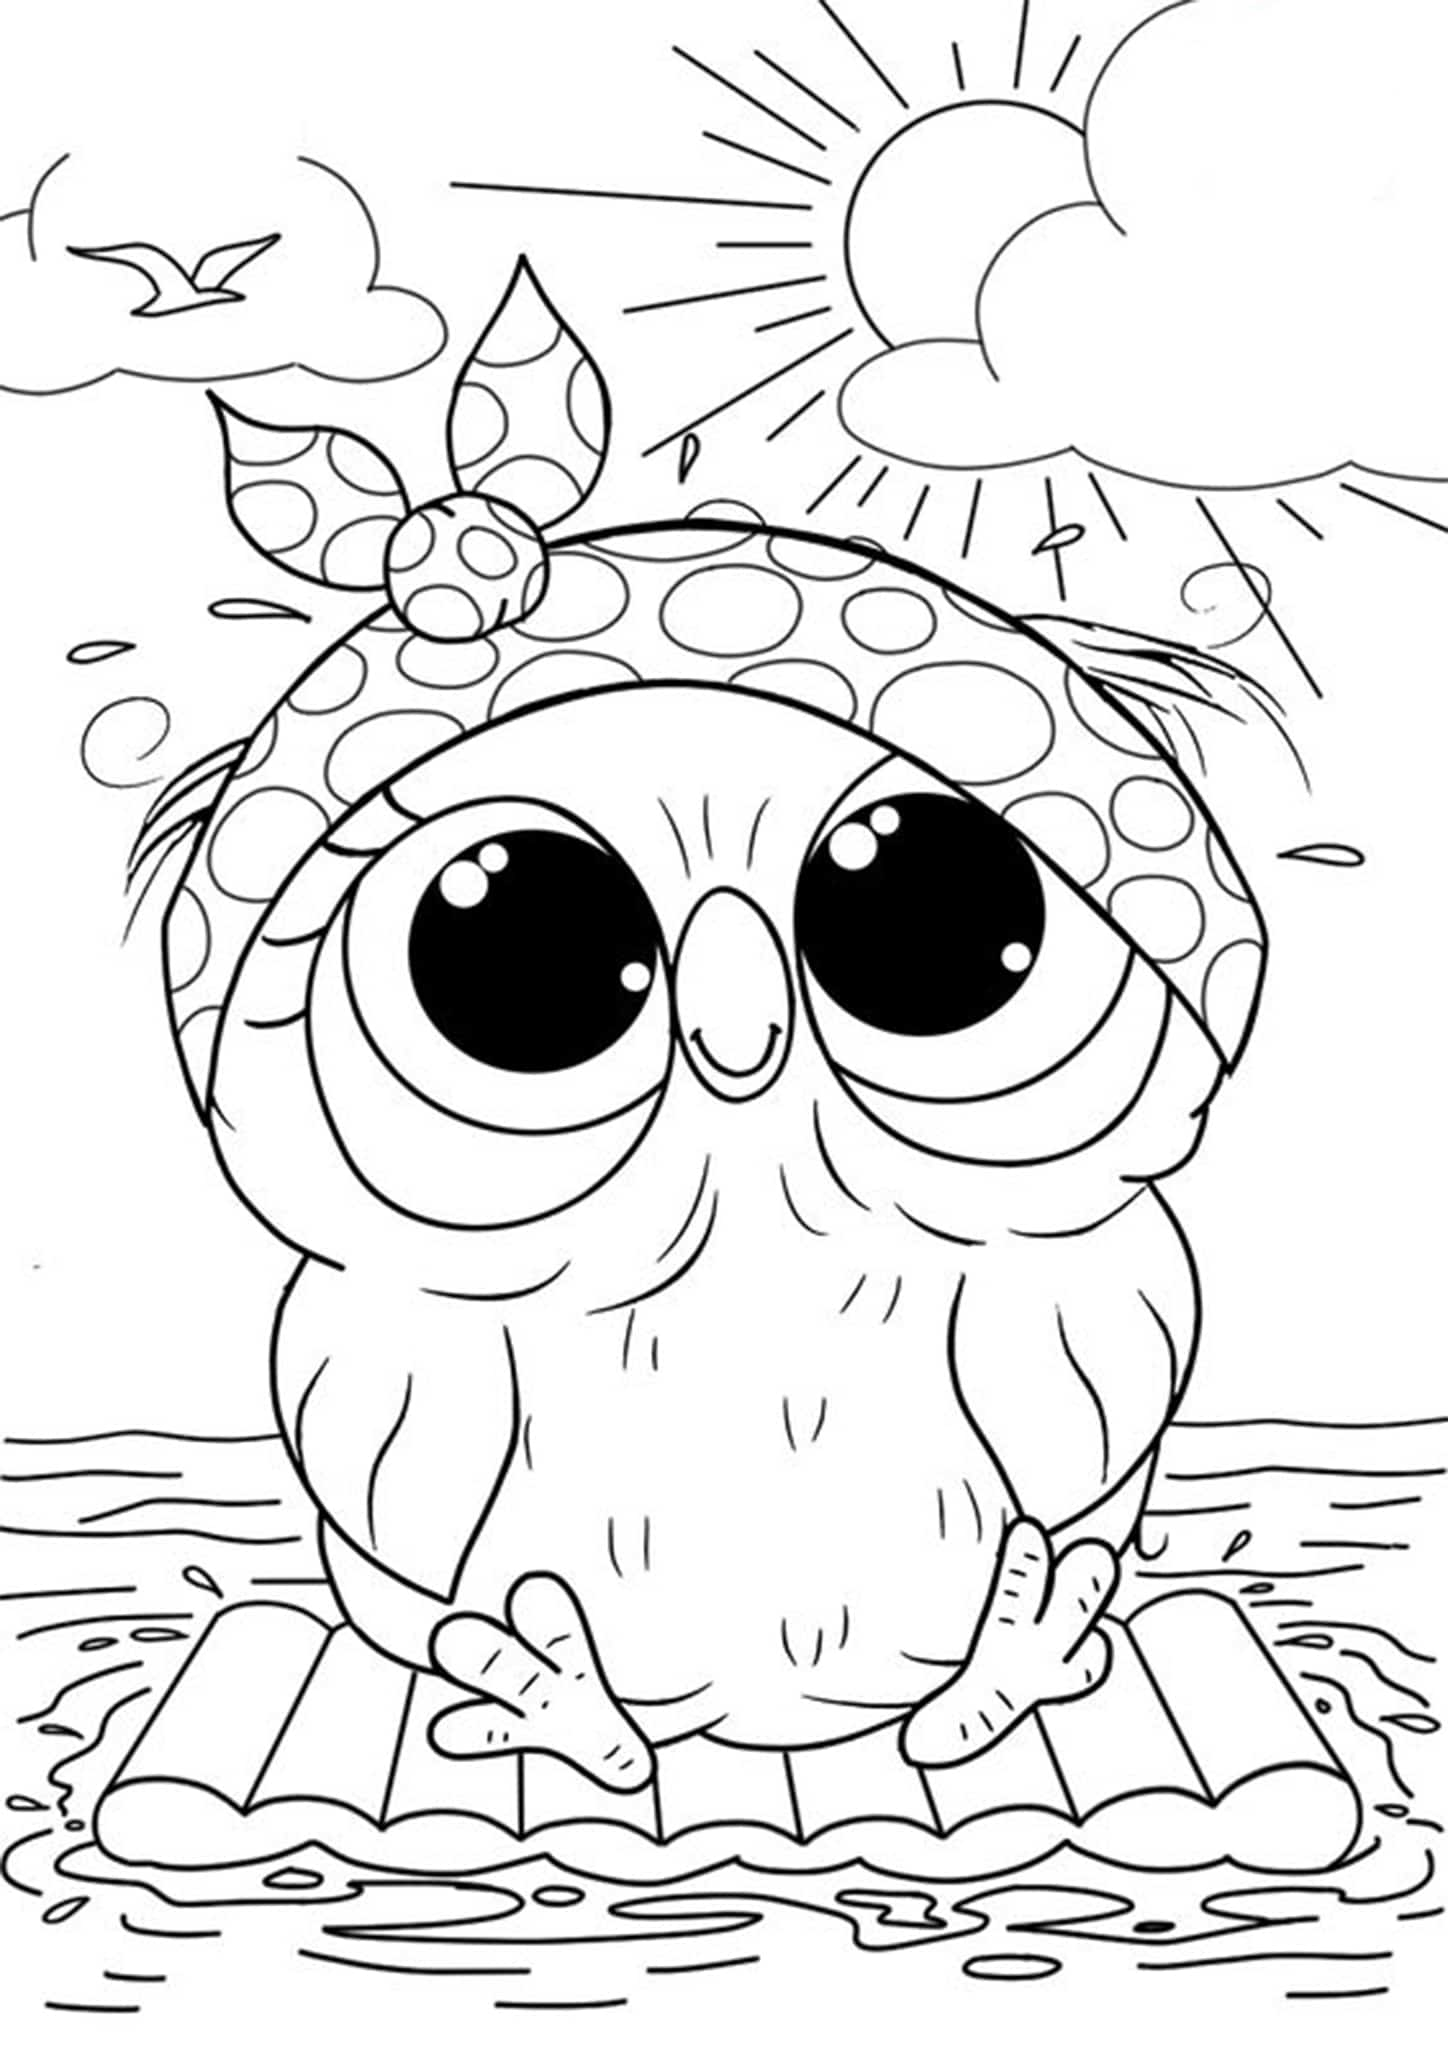 colouring picture of owl owl coloring page clipart free stock photo public domain picture colouring of owl